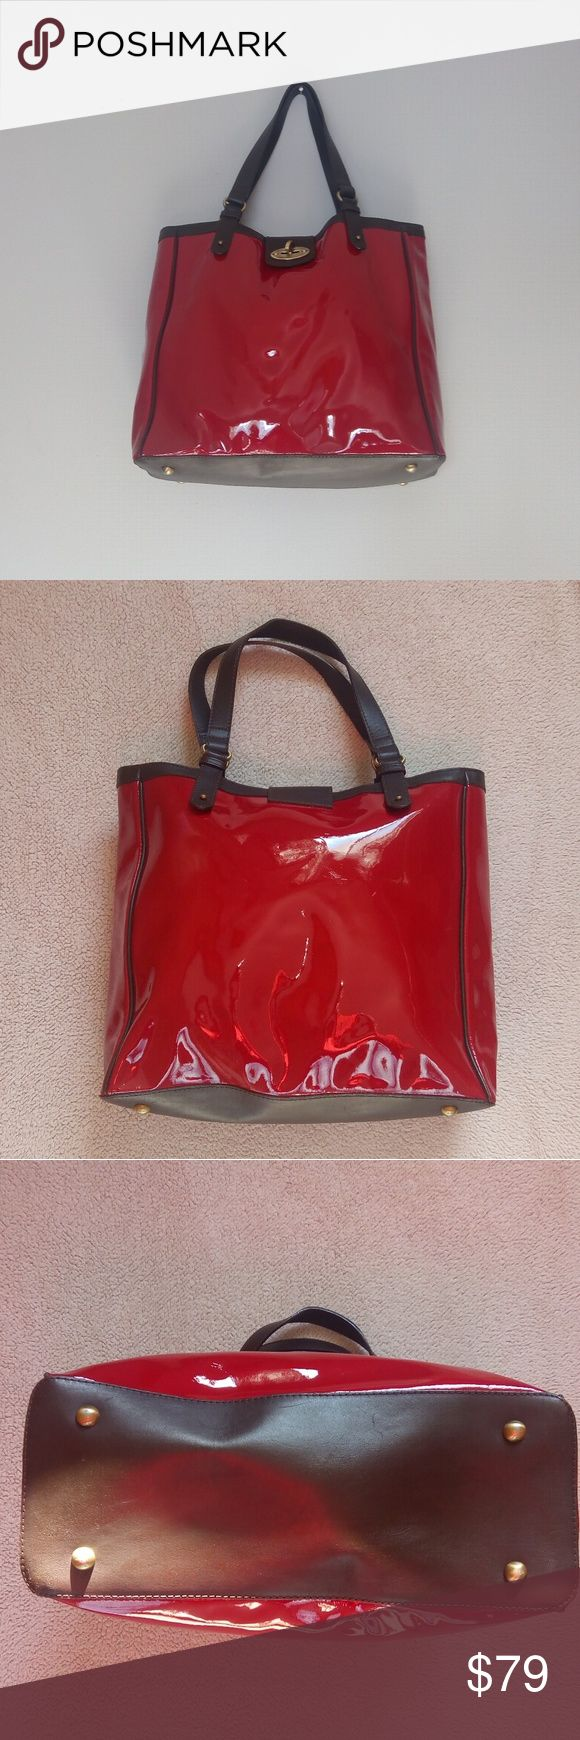 Boden Chelsea Patent Bag This large Boden bag makes a statement. It is a lovely patent red leather with a rich brown leather trim. It has antiqued brass finish hardware and a London cityscape lining. It is in gorgeous condition both inside and out with minor wear to the feet. It features a flap with turnlock closure with one main compartment and three interior pockets(two slip on one side and one zippered on the other side) 100% leather Boden Bags